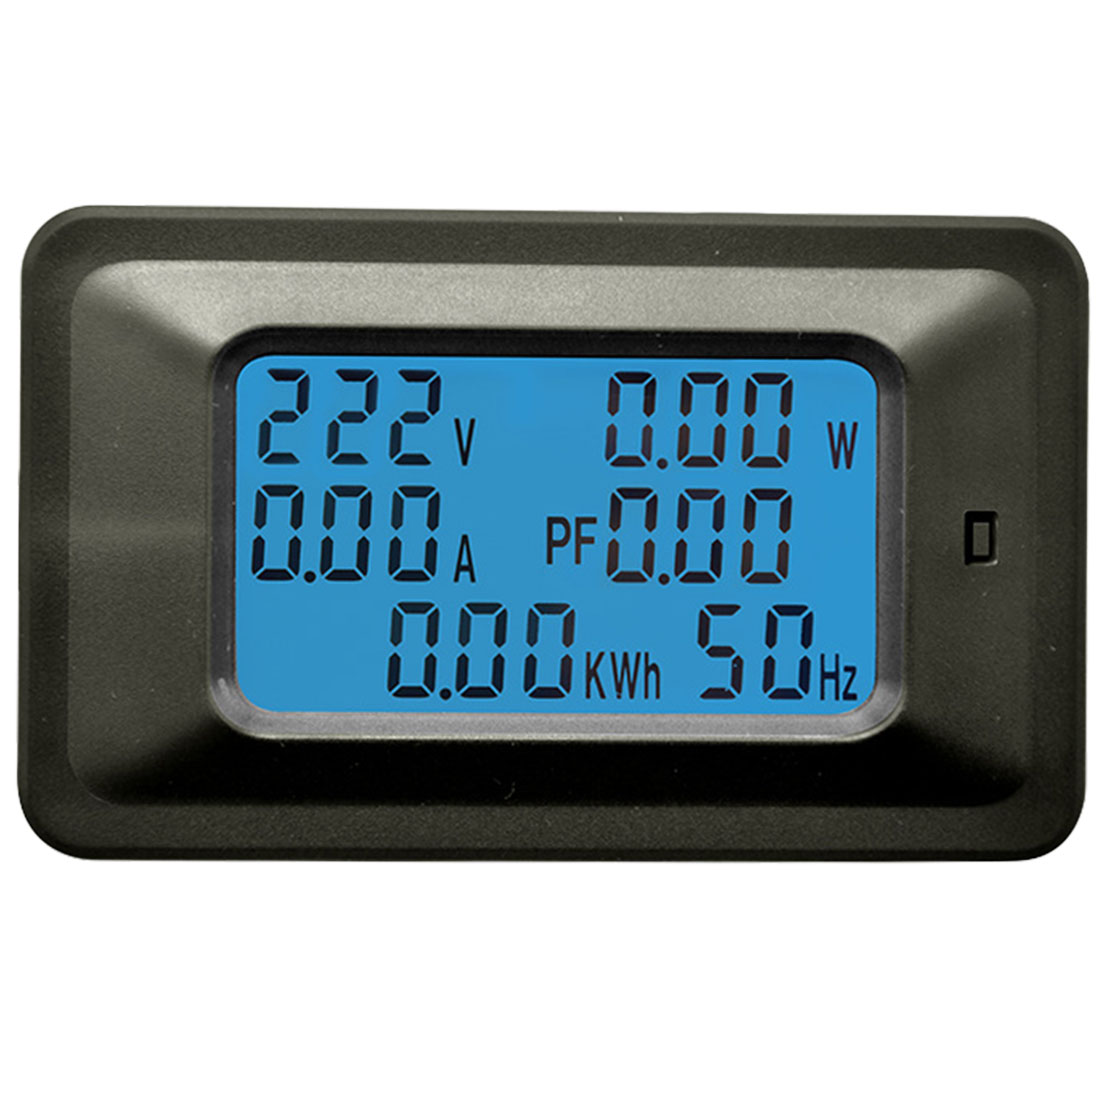 6 IN 1 LCD Digital AC 20A 100A Voltage Energy Meter Voltmeter Ammeter Power Current Panel Watt Combo Indicator 110V 220V ac220v 20a digital voltage meter energy meter lcd 5kw power voltmeter ammeter current amps watt meter tester detector indicator